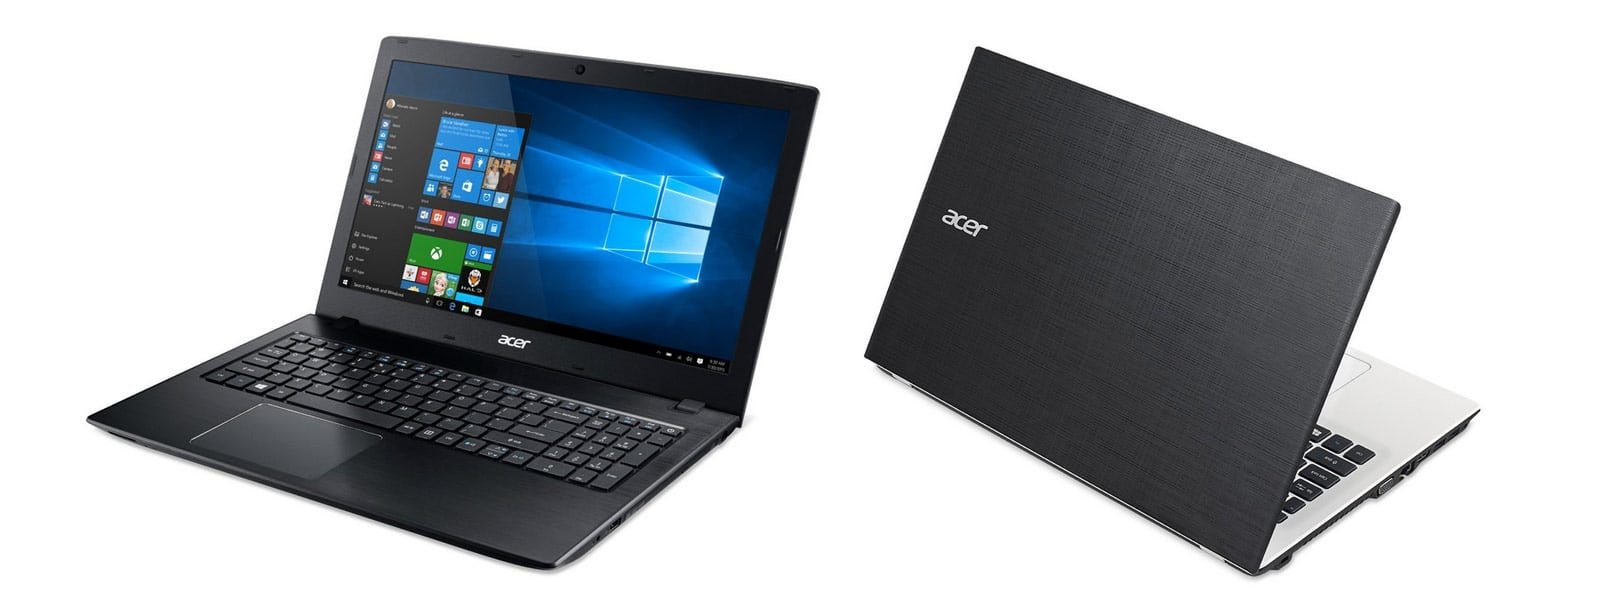 The Acer Aspire E15 is made of plastic, but offers excellent features for the price